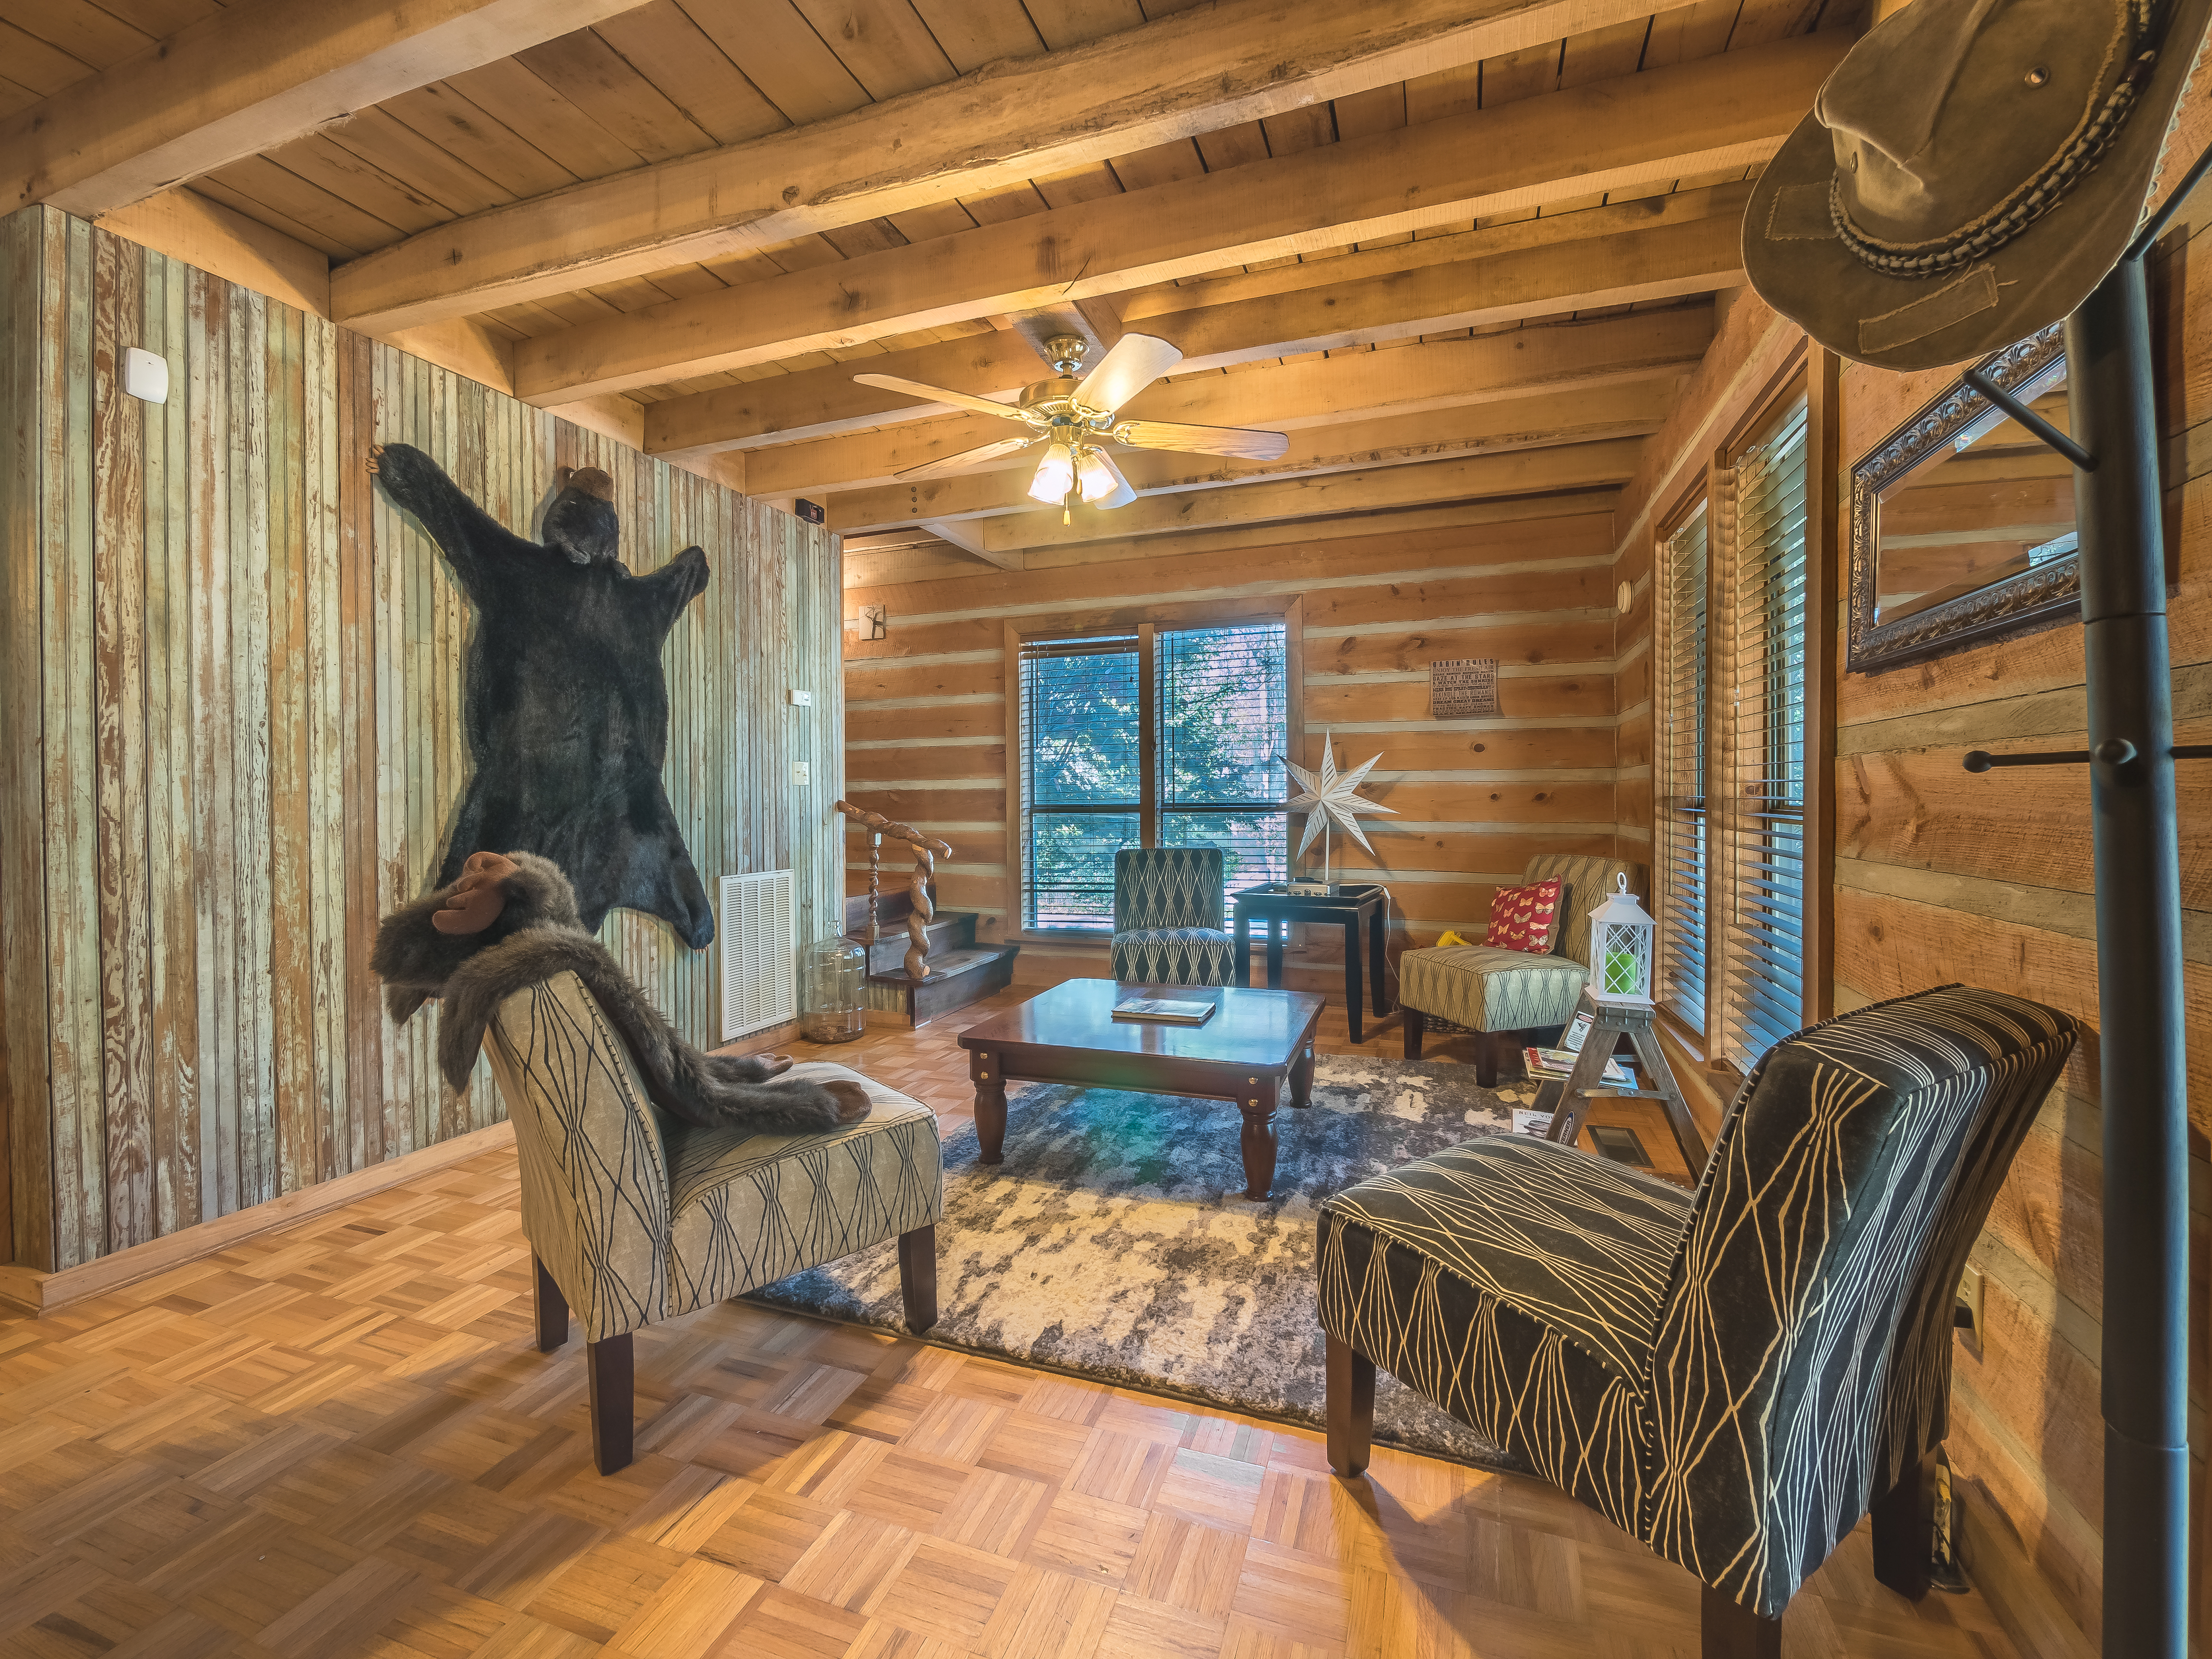 ha property ledge cabins bluff vacation view cabin decks chattanooga mountain lookout sunset rentals stone